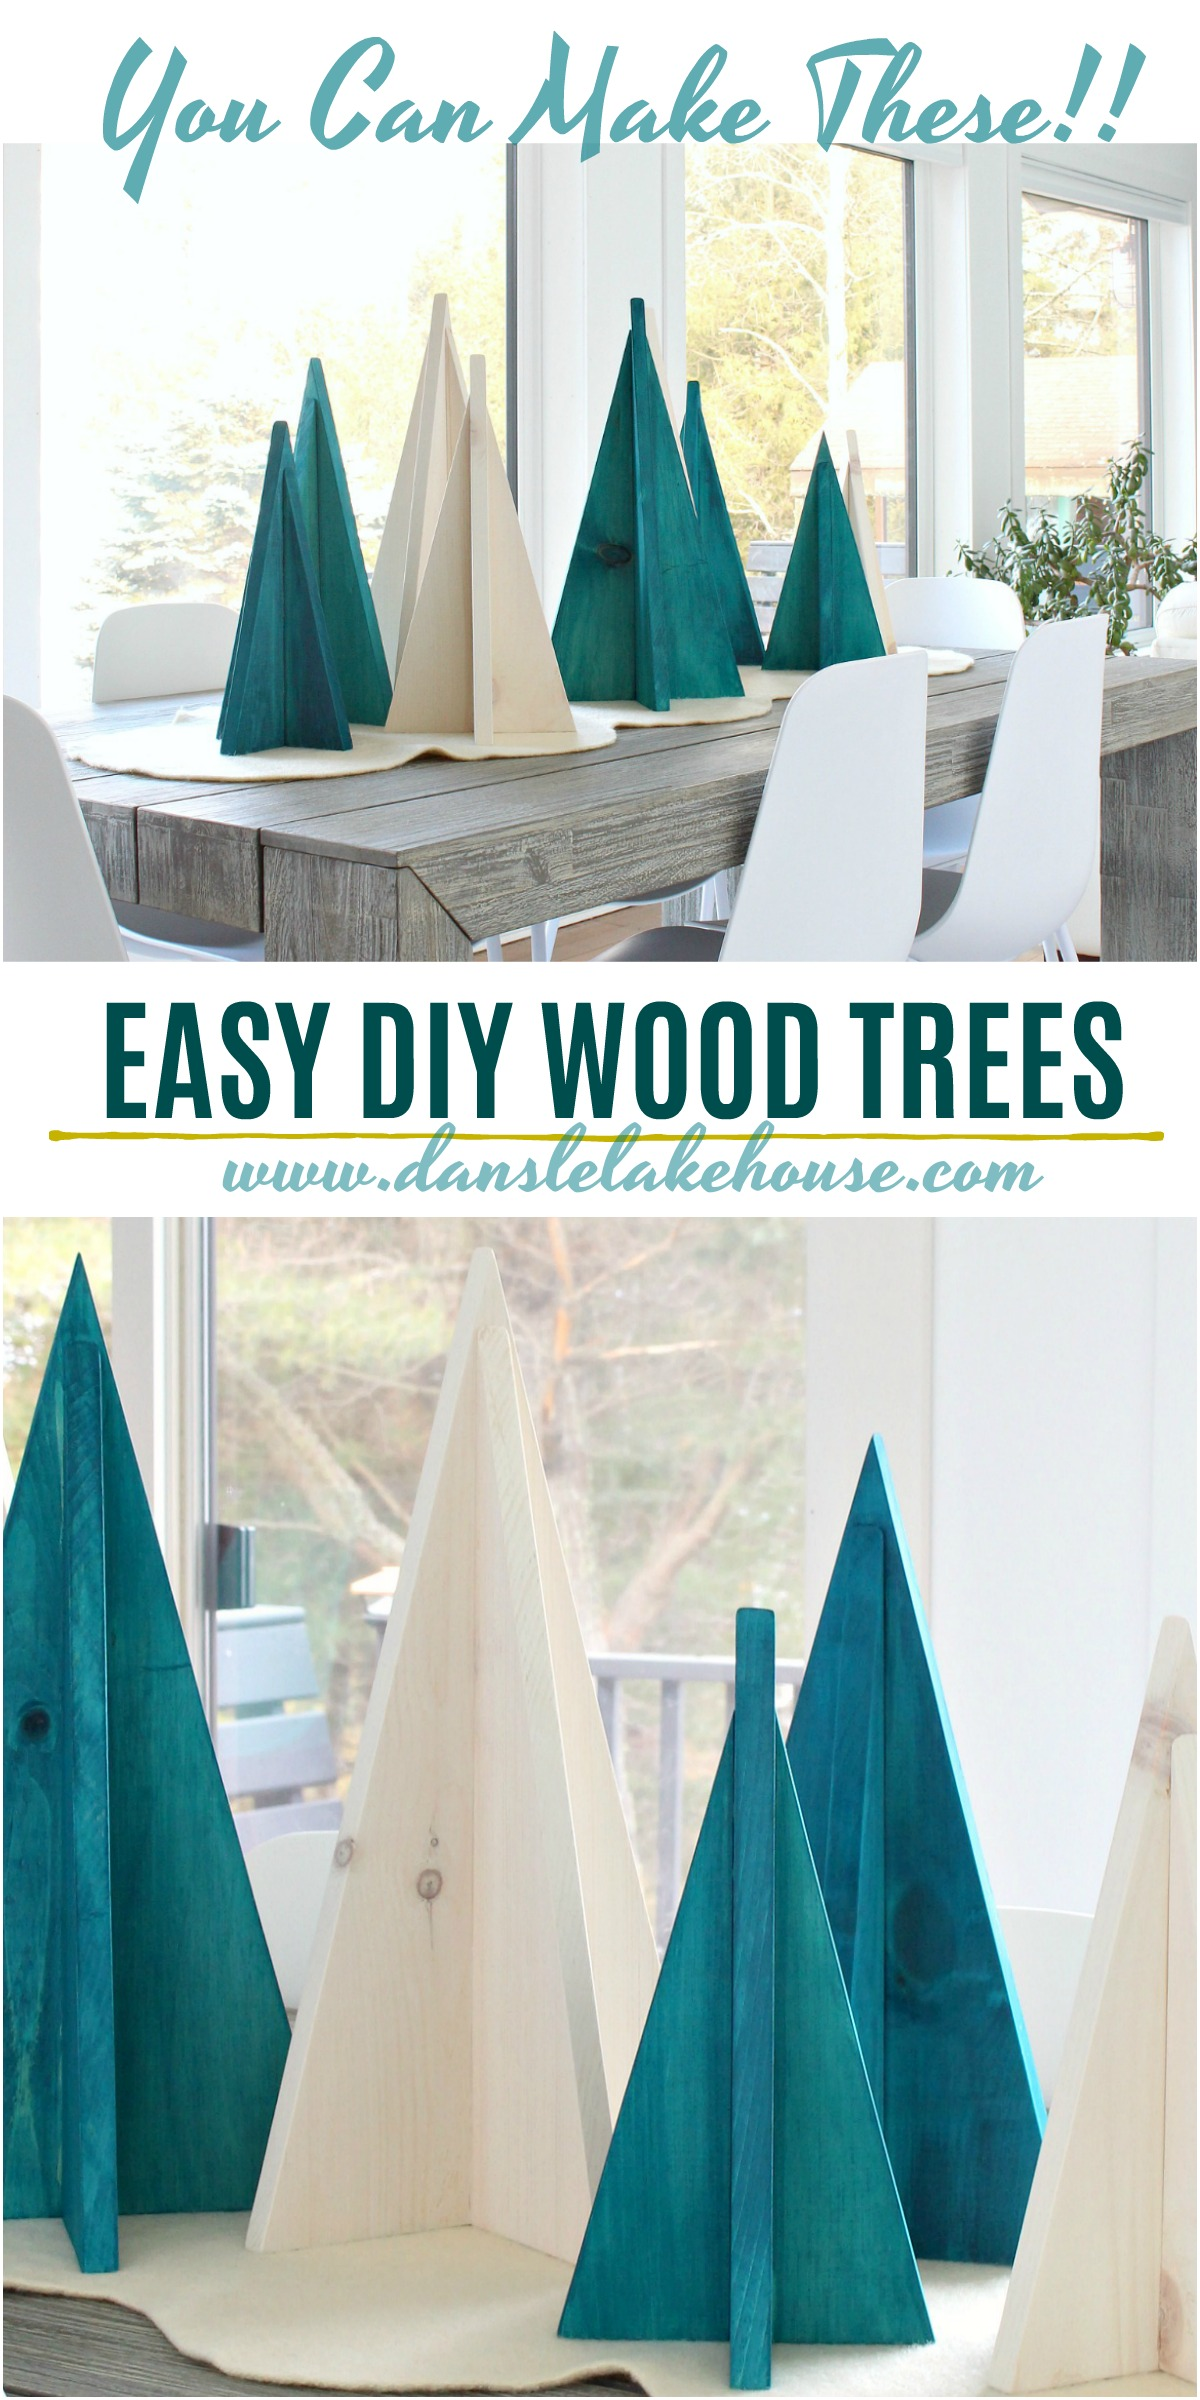 Learn How to Make These Easy DIY Wood Trees